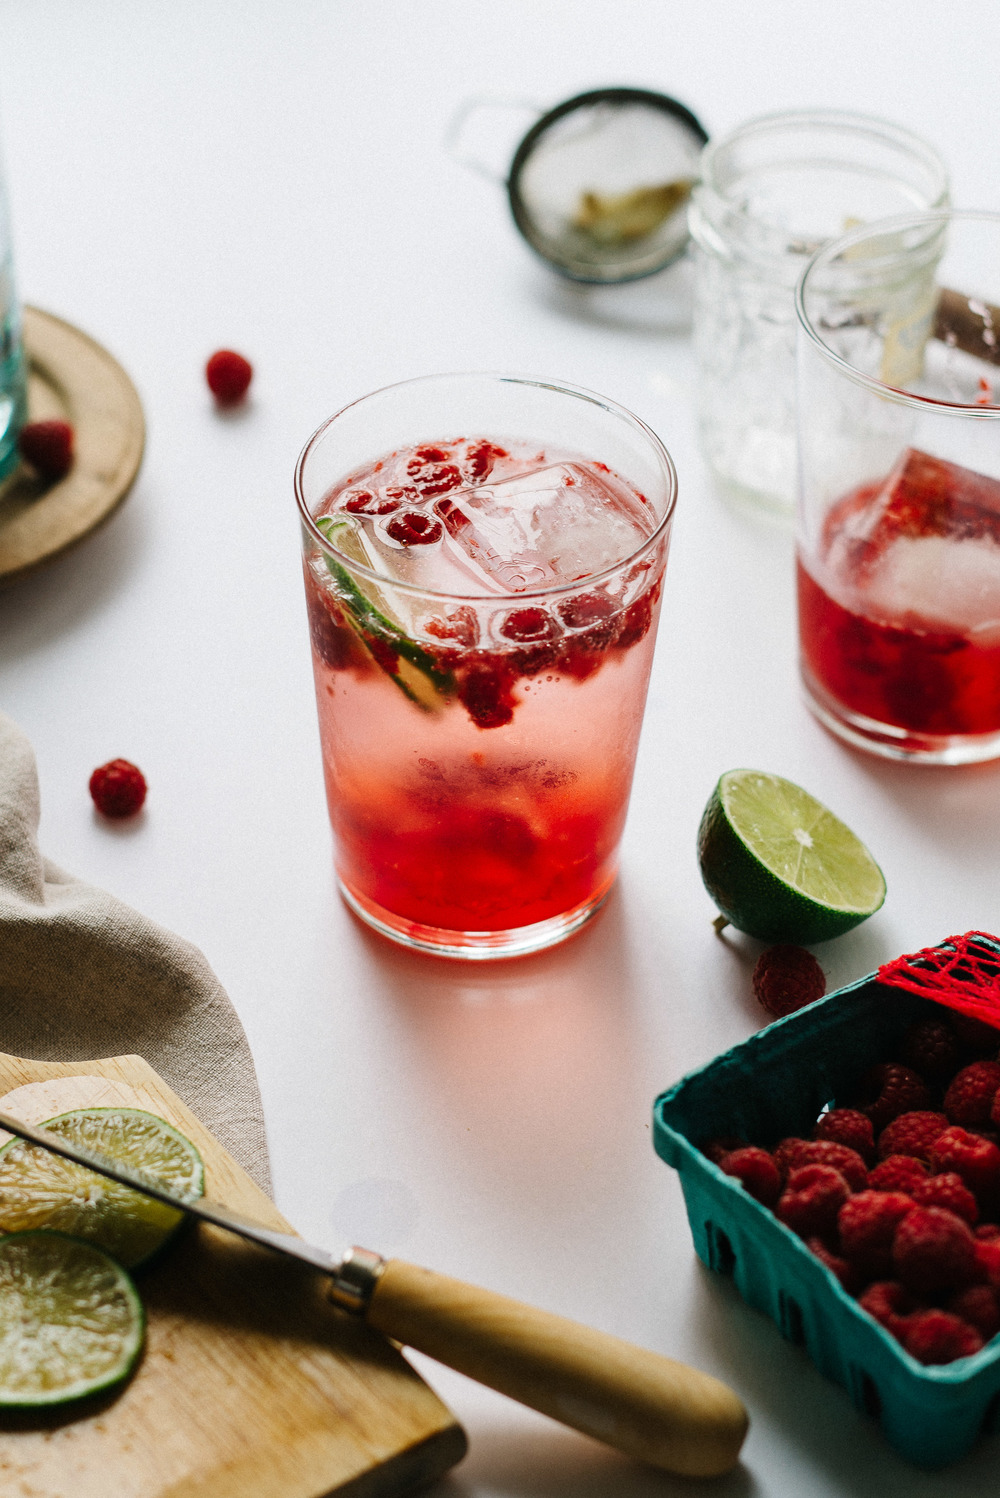 Summer Fridays! Fizzy Lemon-Limeade w/ Crushed Raspberries | dolly and oatmeal